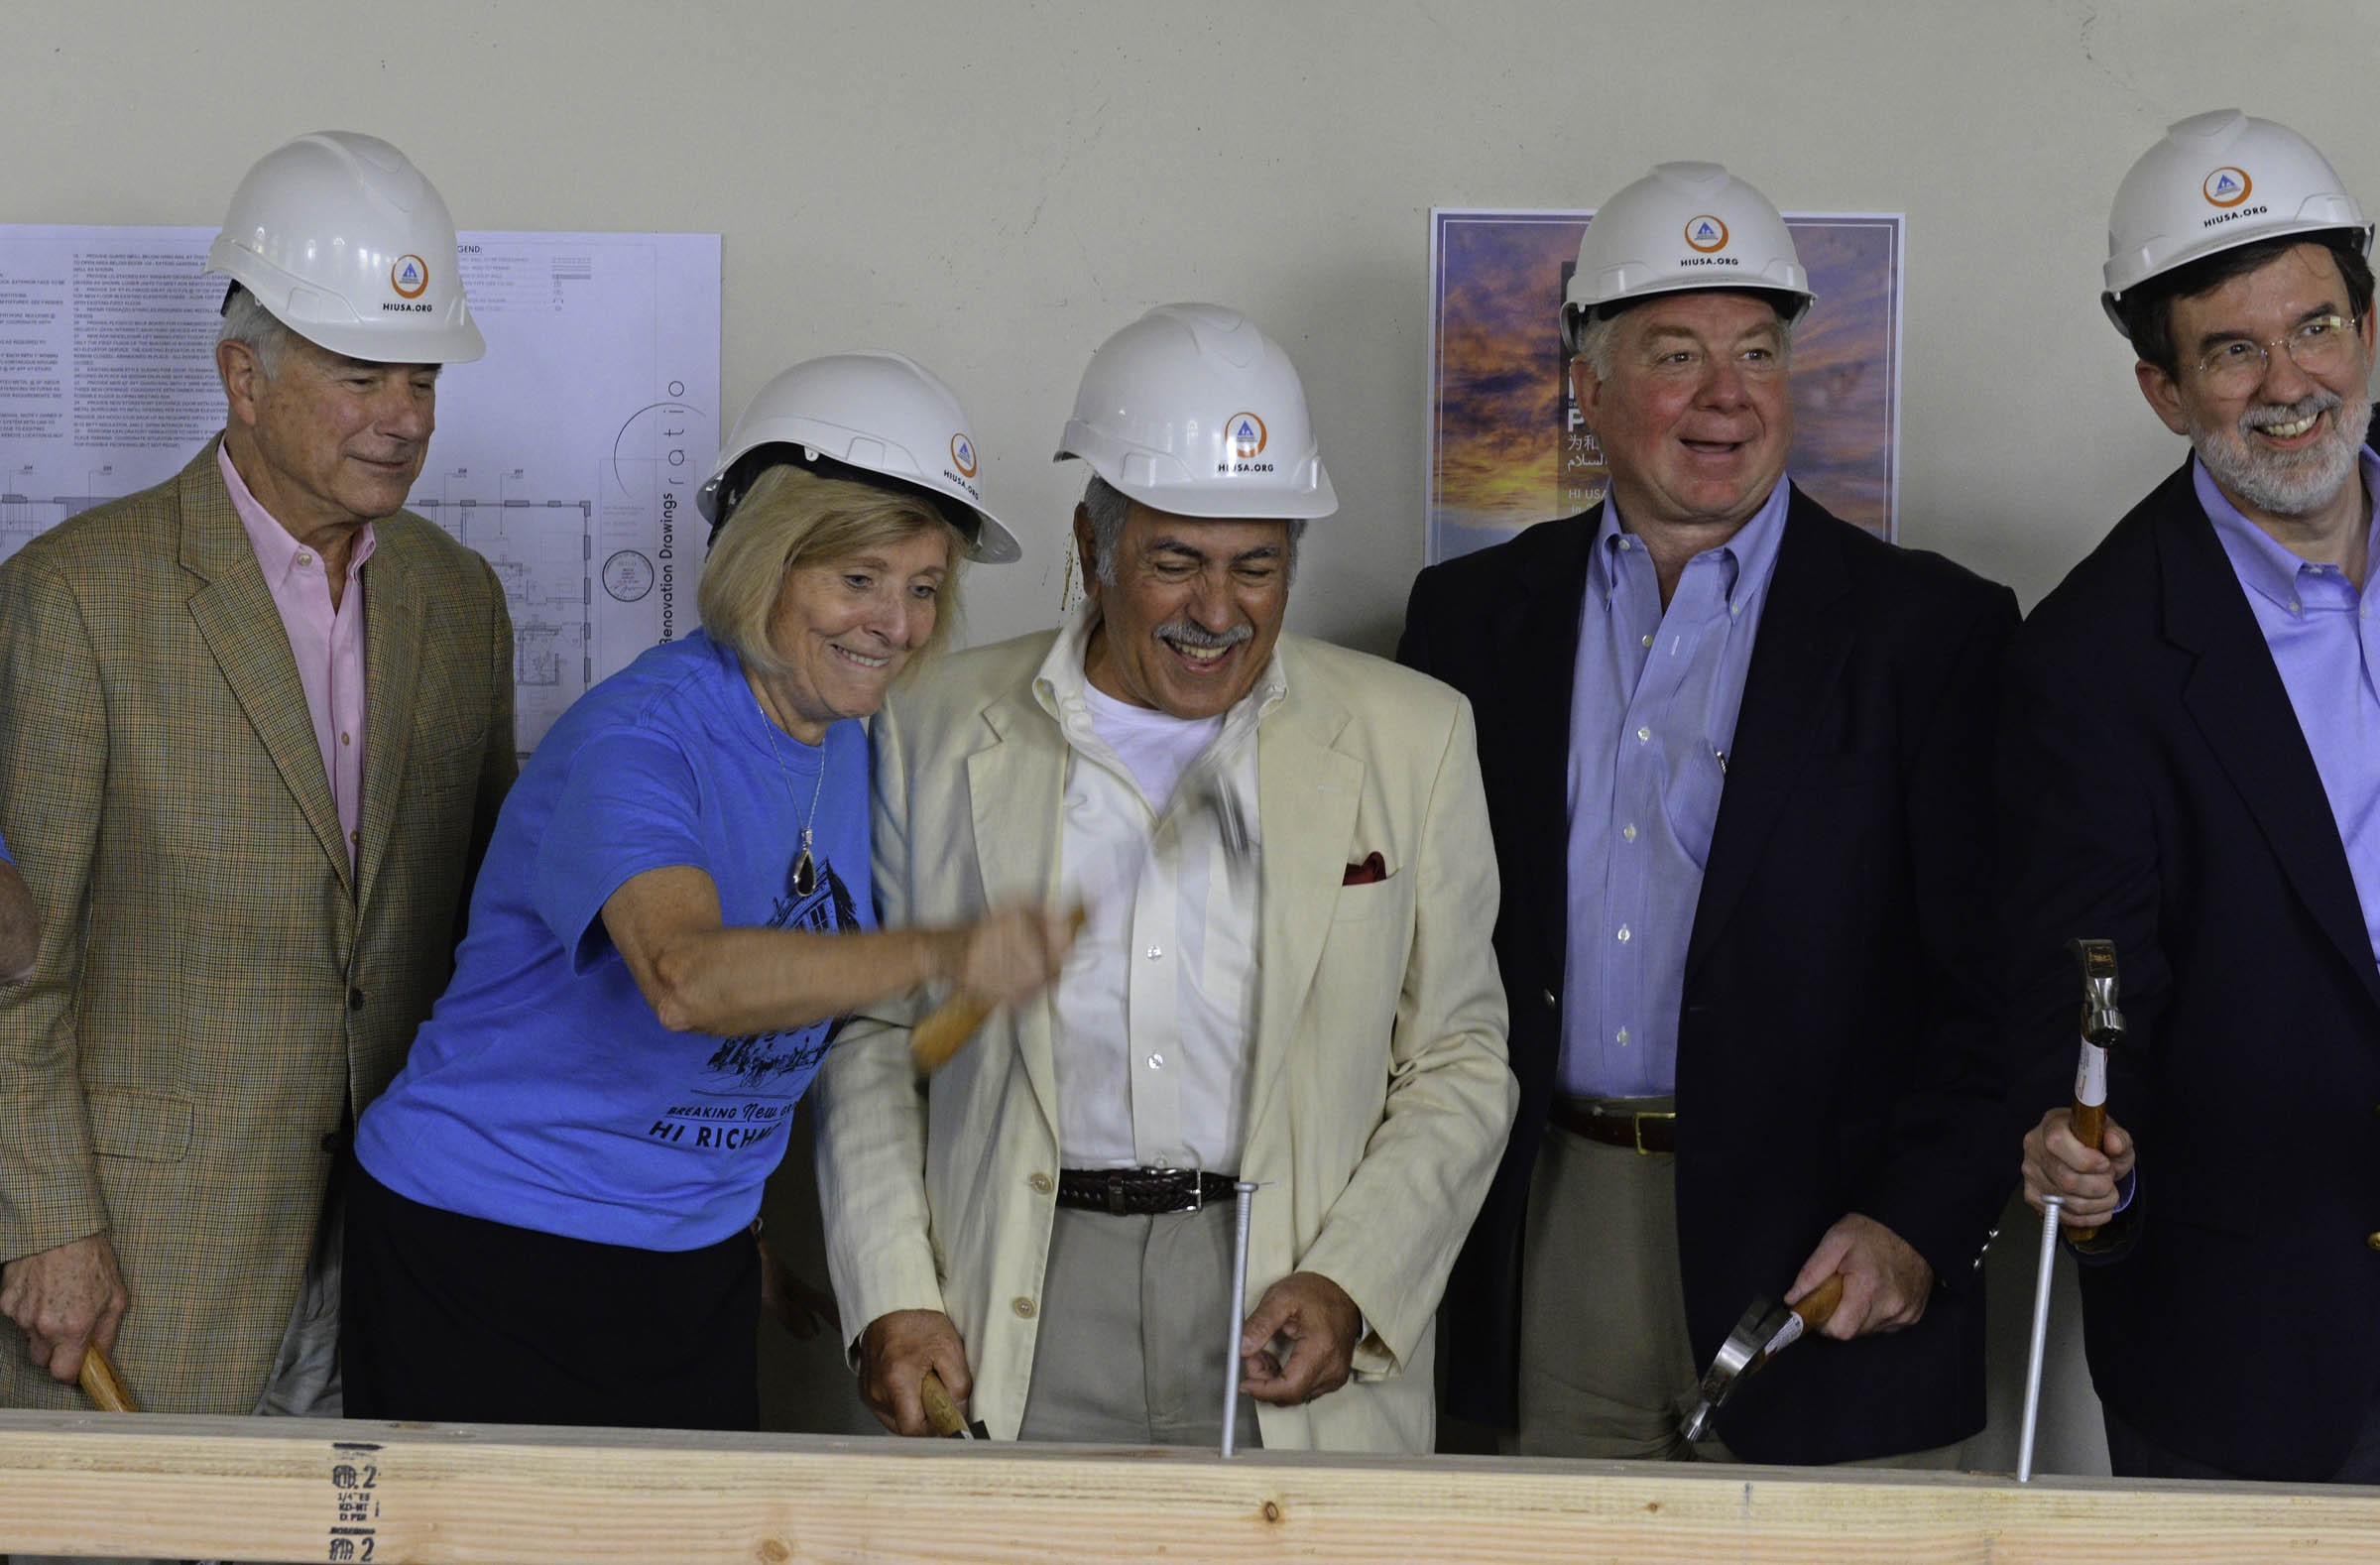 Not far away from Quirk, a $2.8 million hostel opened in 2015 at 7 N. Monroe St. The year before, Jim Ukrop, left, joins Faye Hager of Virginia Capital Realty during a ceremonial groundbreaking. Ukrop helped give the decade-old project some traction. - SCOTT ELMQUIST